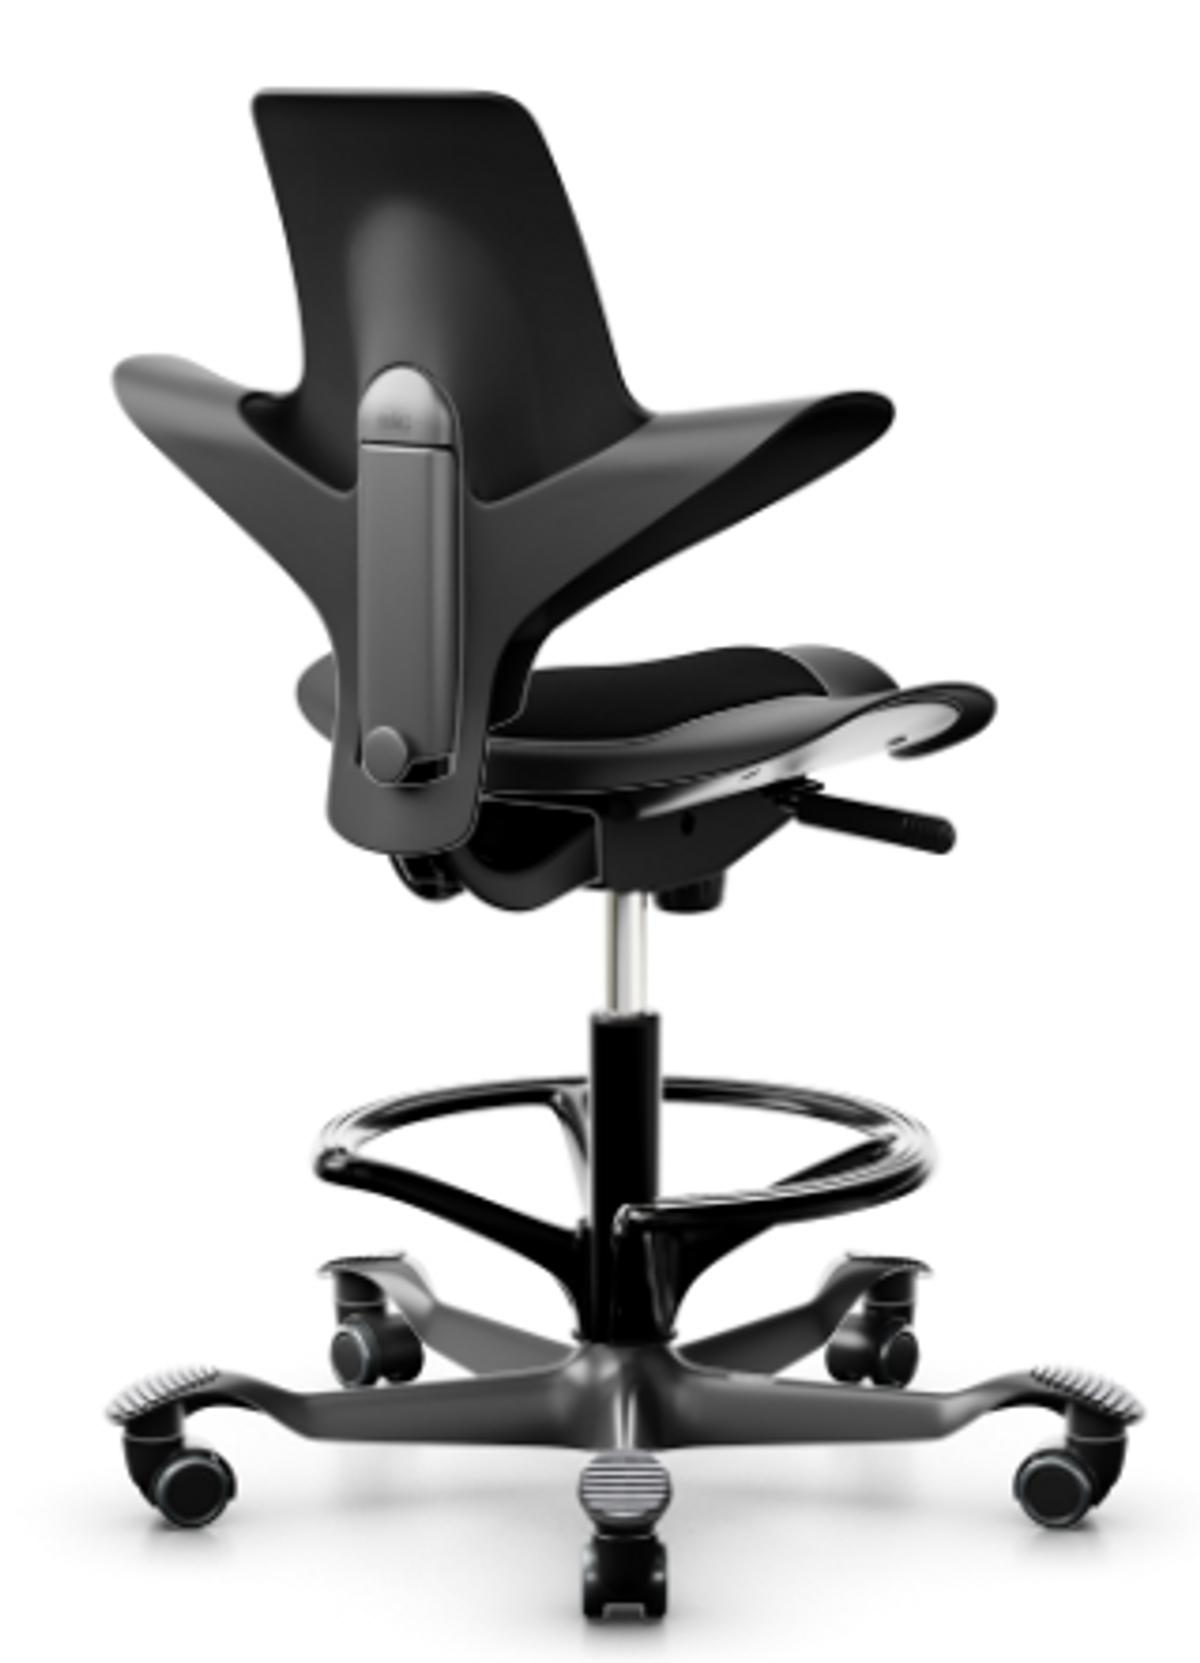 Groovy Hag Ergonomic Office Chair For Sale In Sw12 Lambeth For Onthecornerstone Fun Painted Chair Ideas Images Onthecornerstoneorg